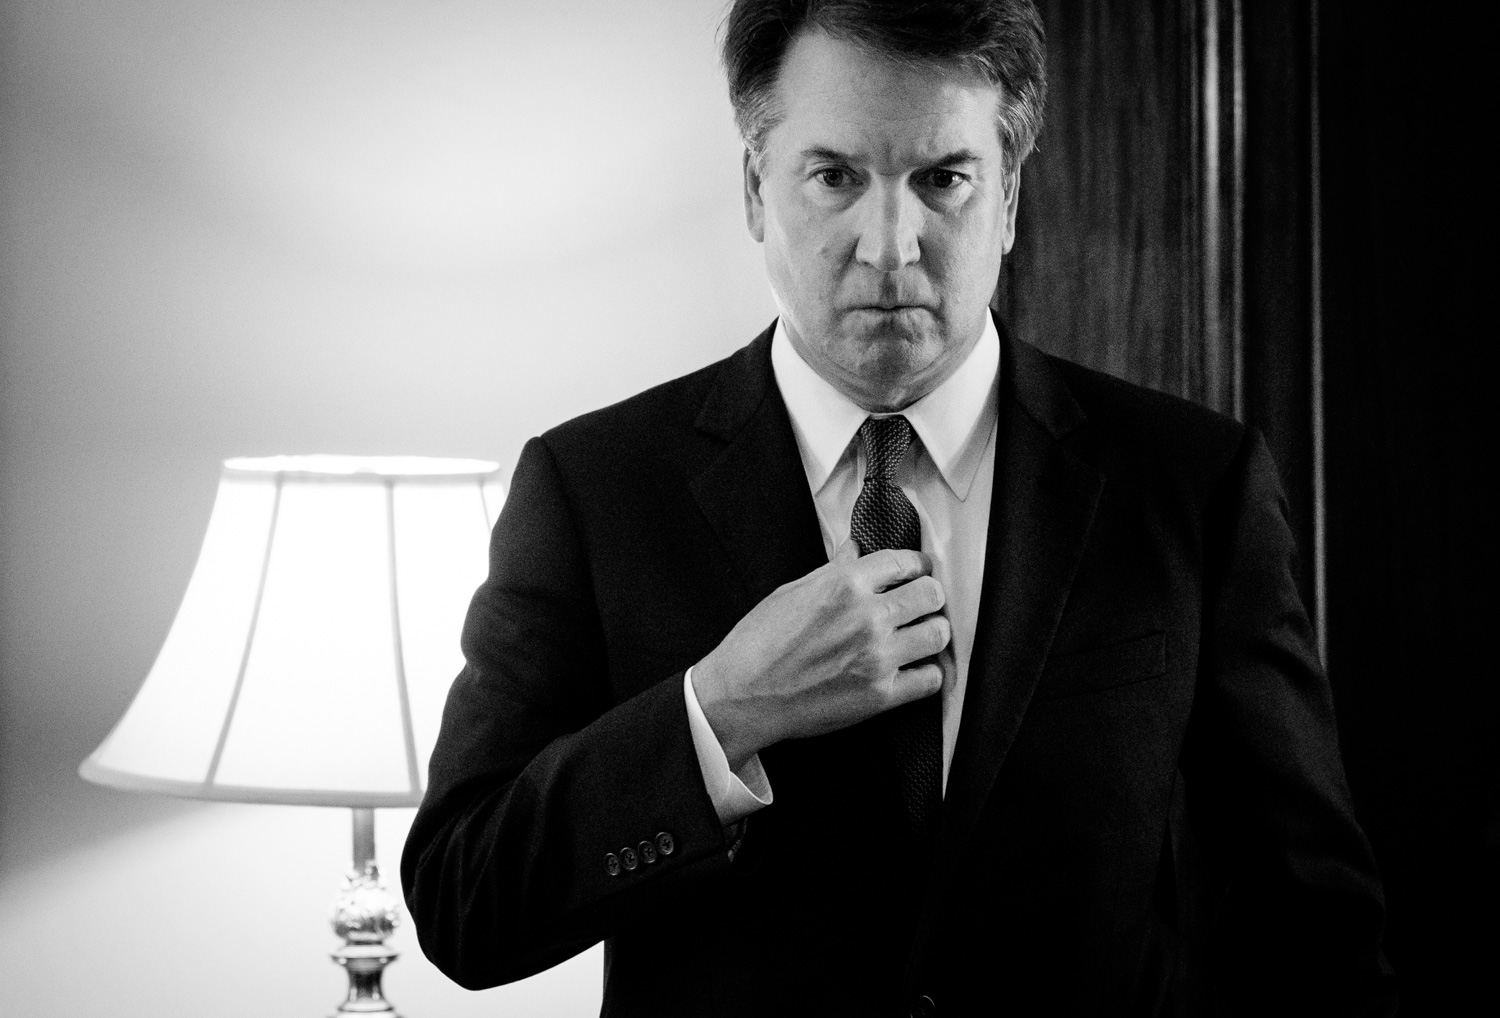 Judge Brett Kavanaugh, President Donald Trump's nominee for the Supreme Court, adjusts his tie in-between meetings with Senators on Capitol Hill in Washington, DC on July 30, 2018. (Photo by Erin Schaff for The New York Times)